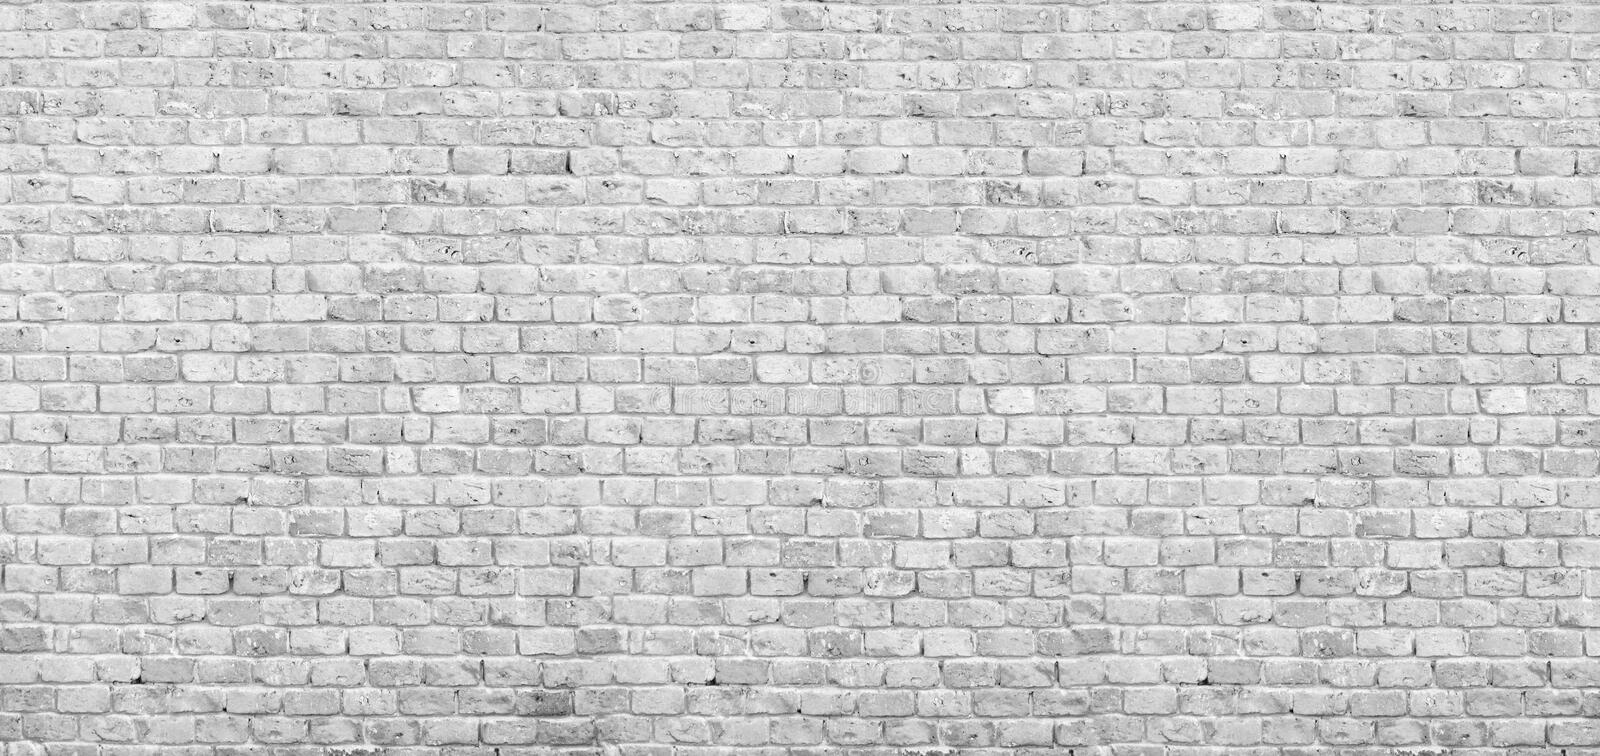 849 058 Brick Wall Photos Free Royalty Free Stock Photos From Dreamstime